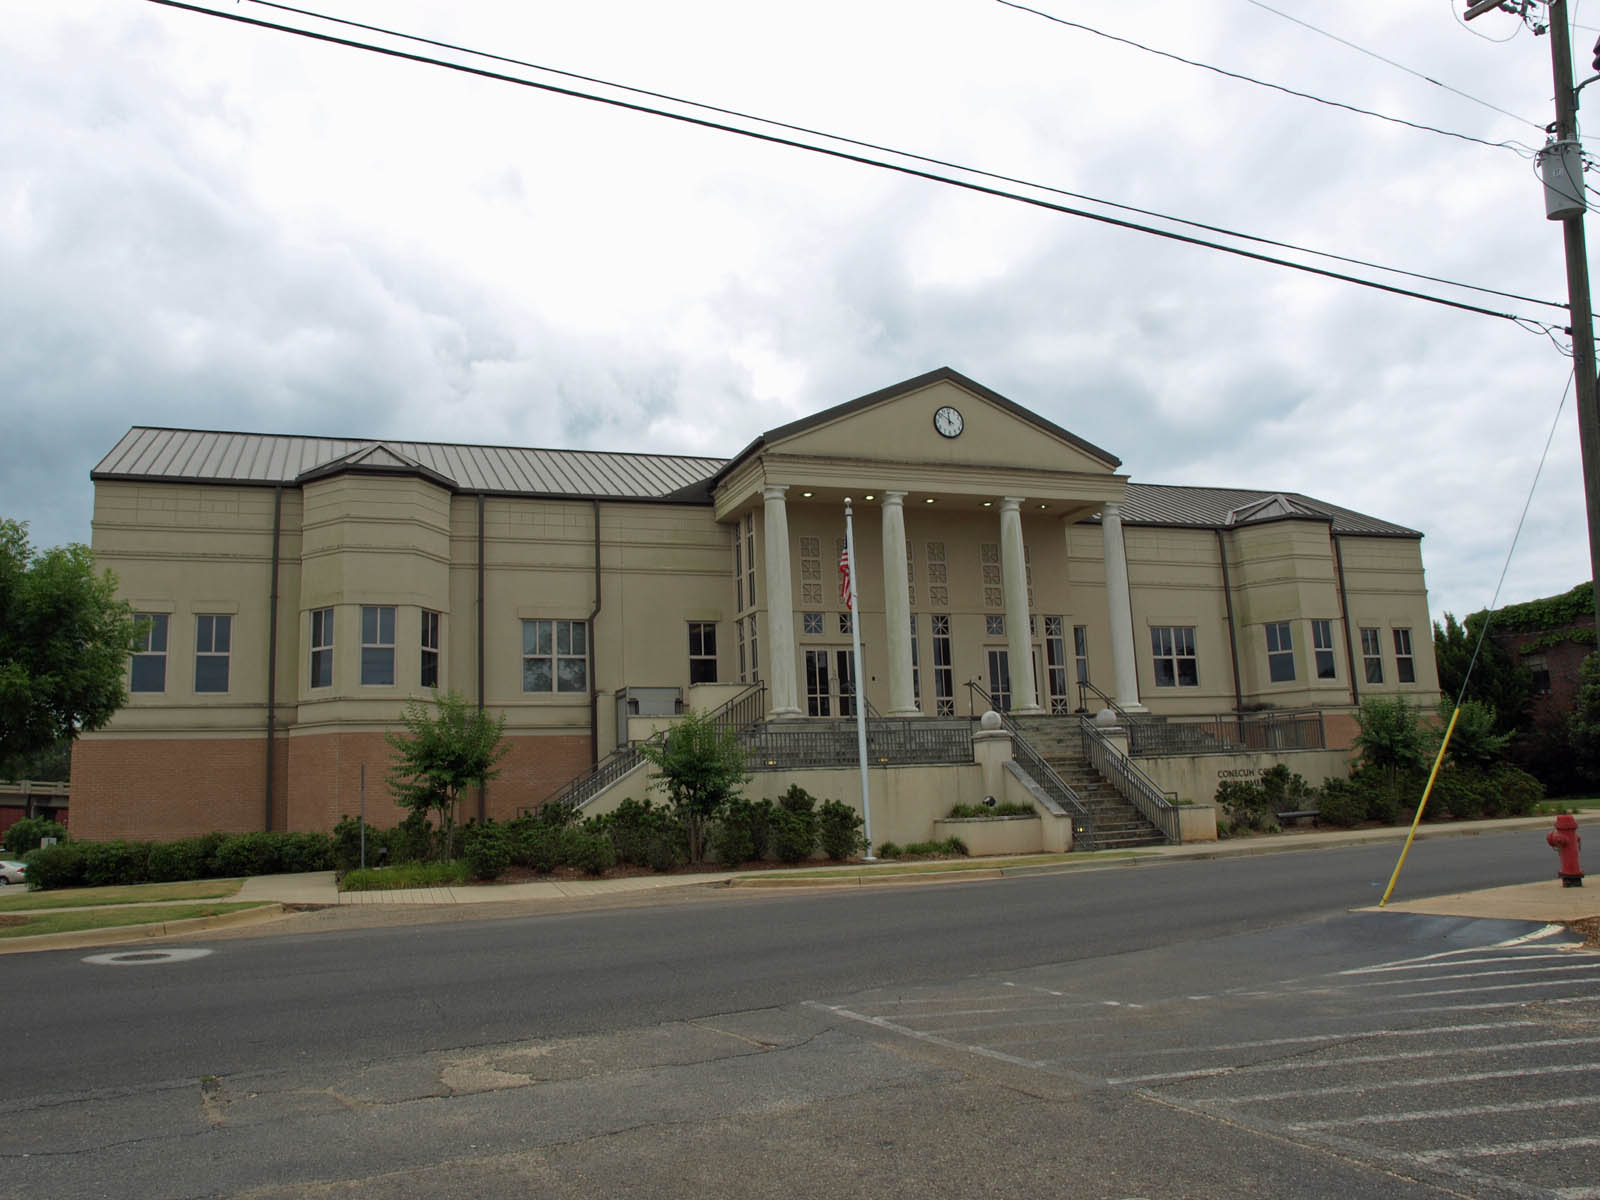 File:Conecuh County Government Center May 2013 2.jpg - Wikipediabalance of conecuh county